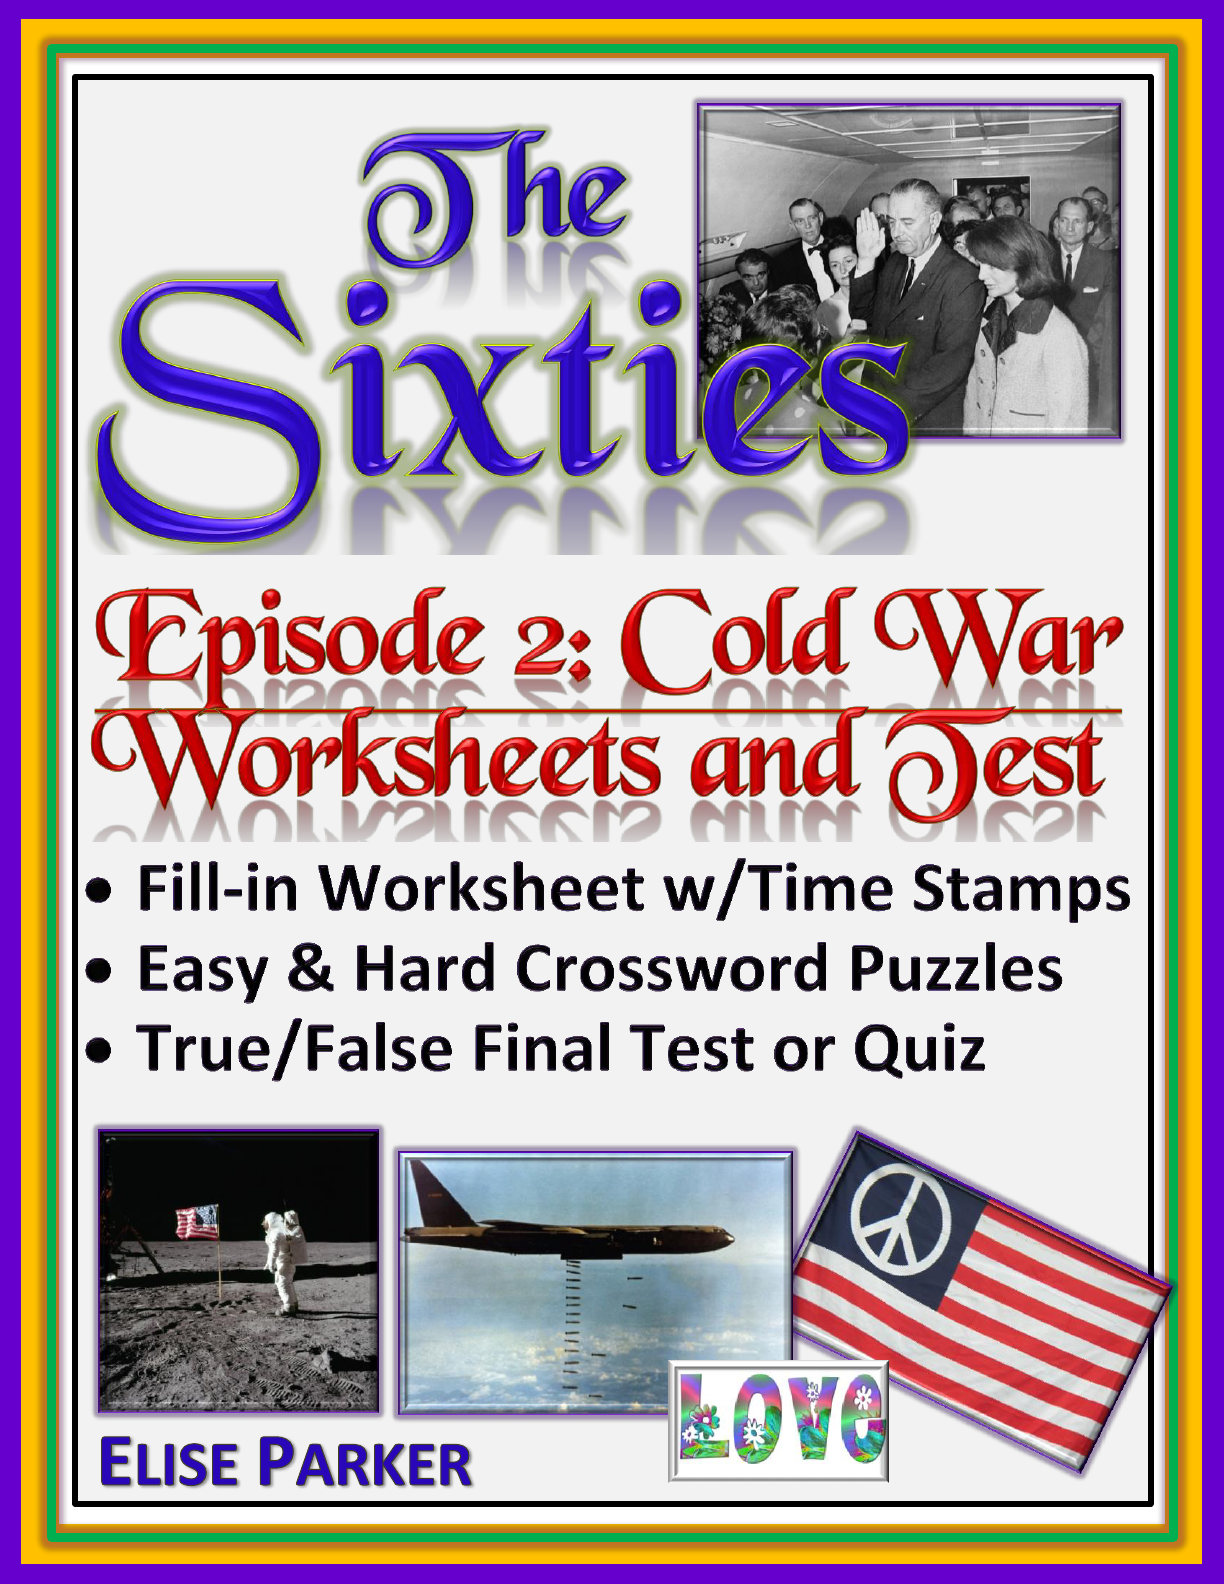 The Sixties Episode 2 Worksheets Puzzles and Test